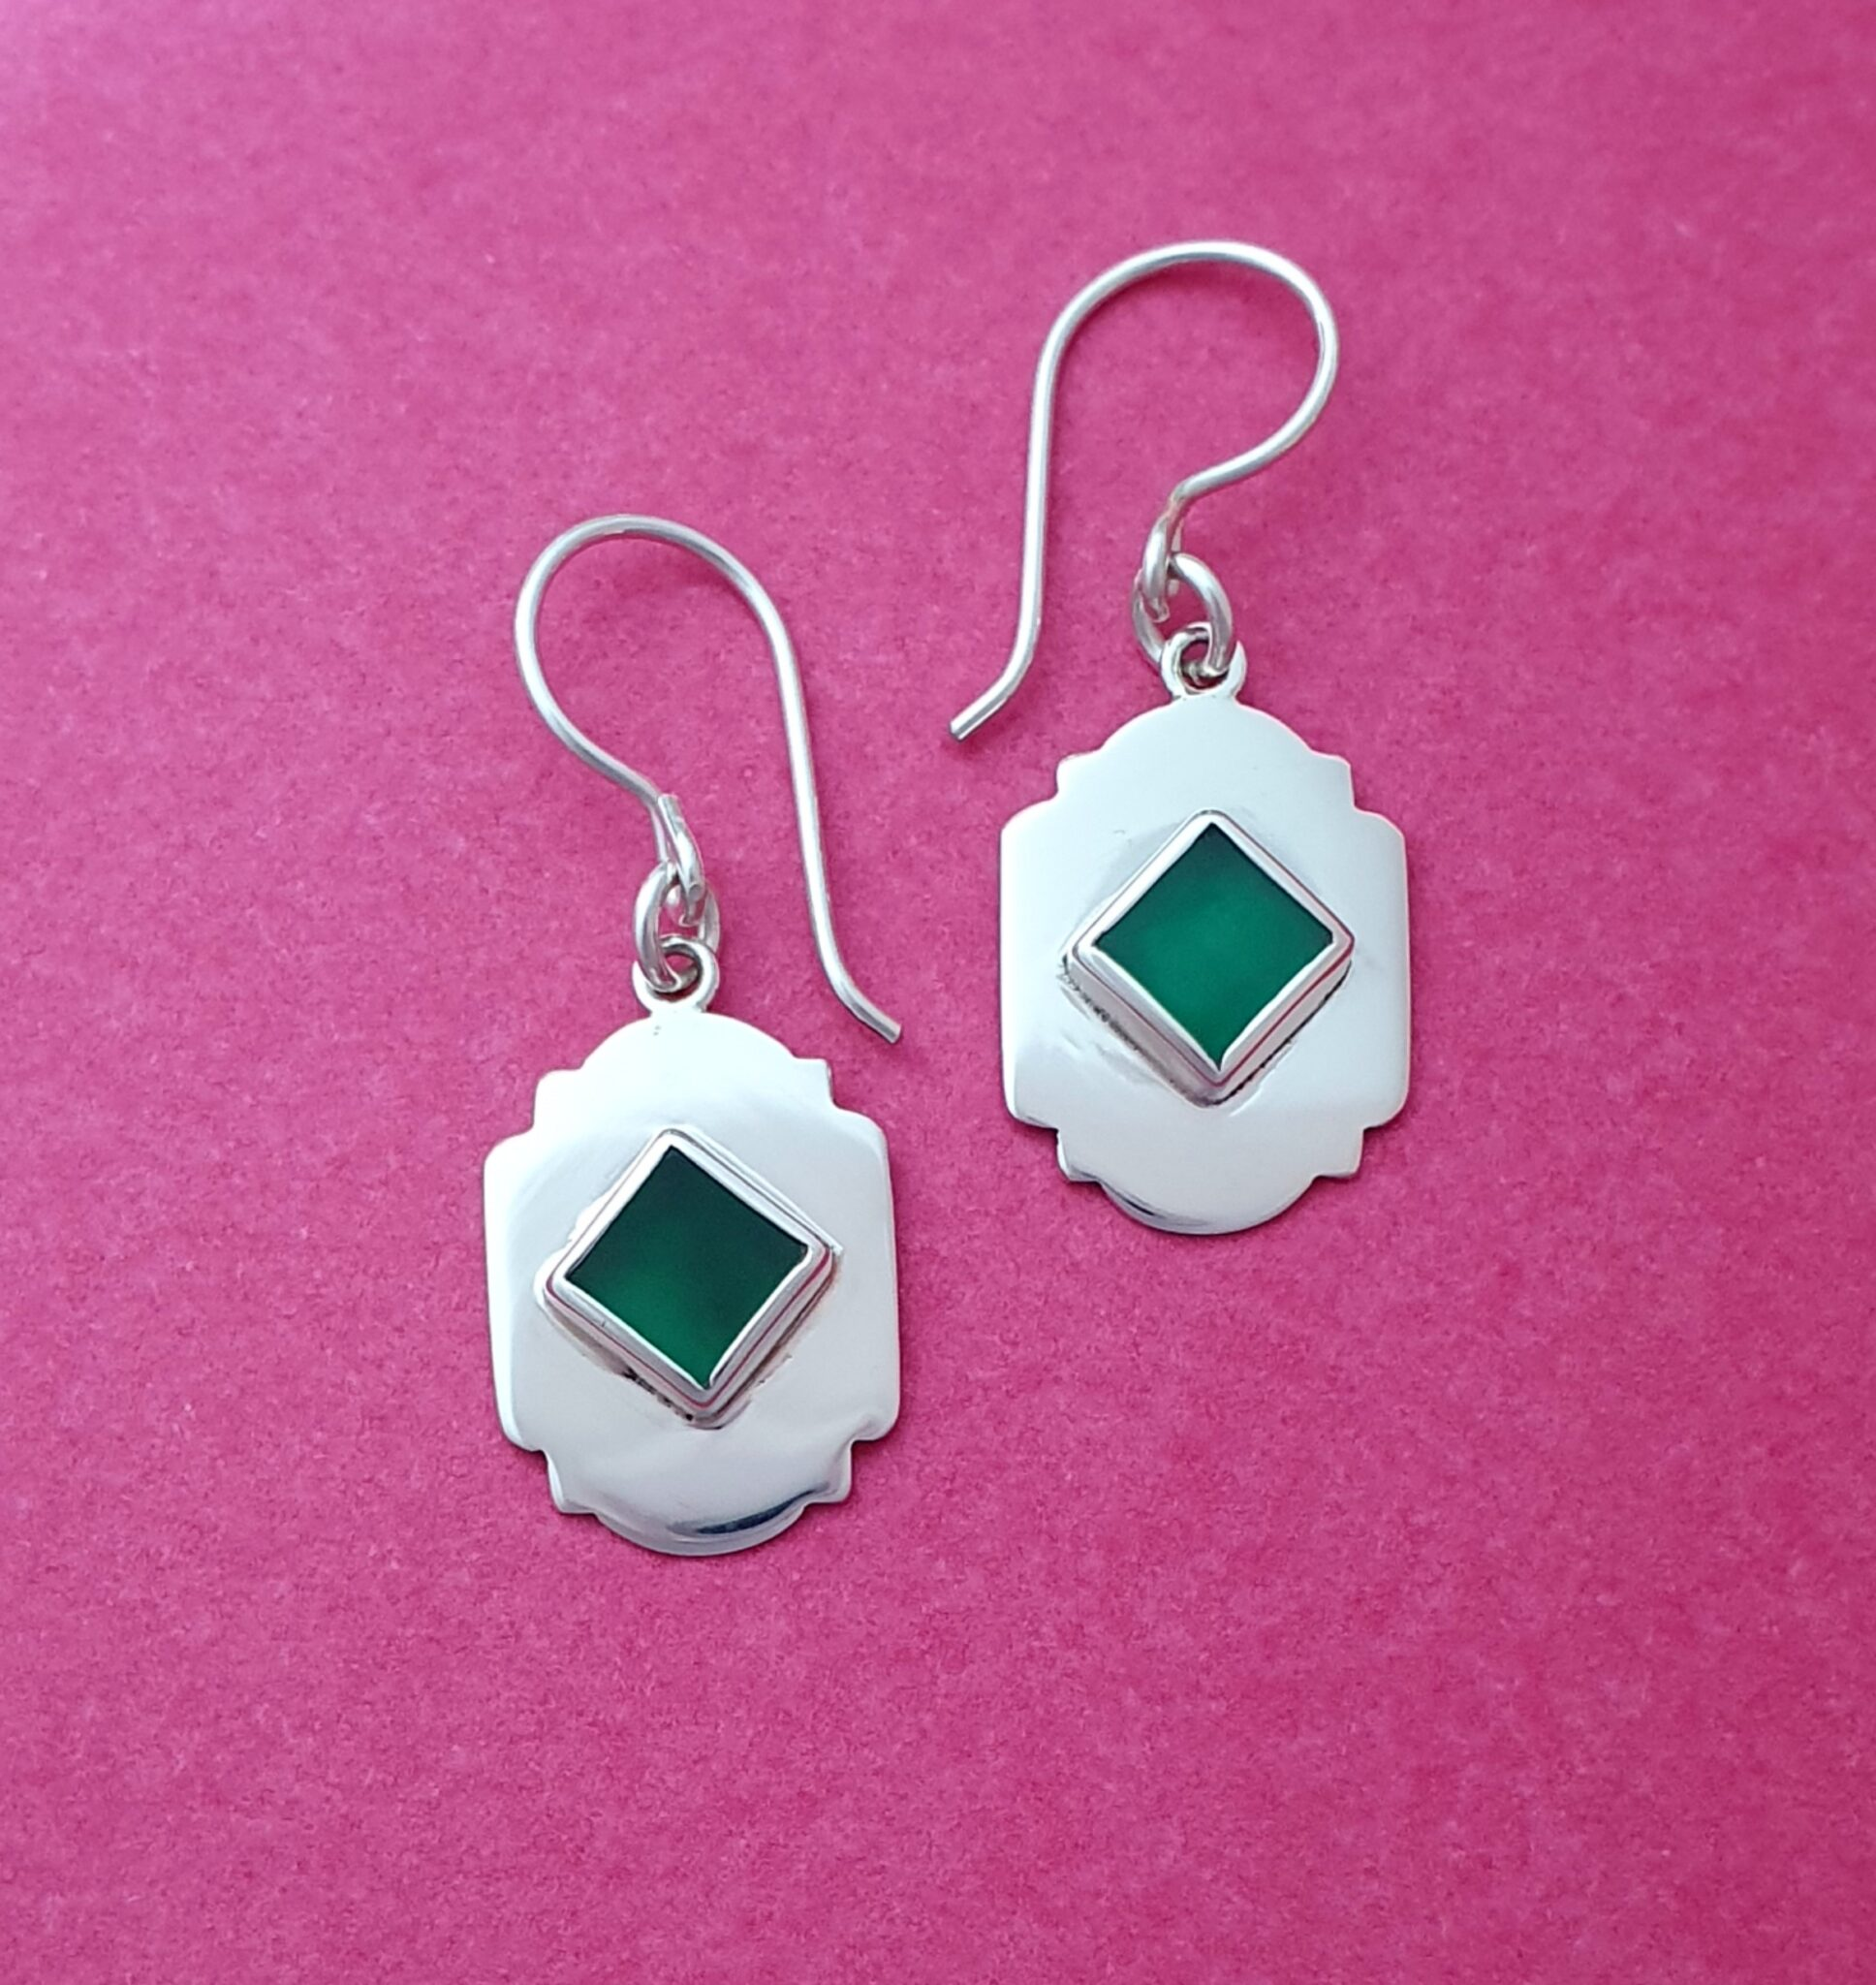 Vintage Arch Sterling Silver And Green Agate Earrings By Flying Lobster Jewellery